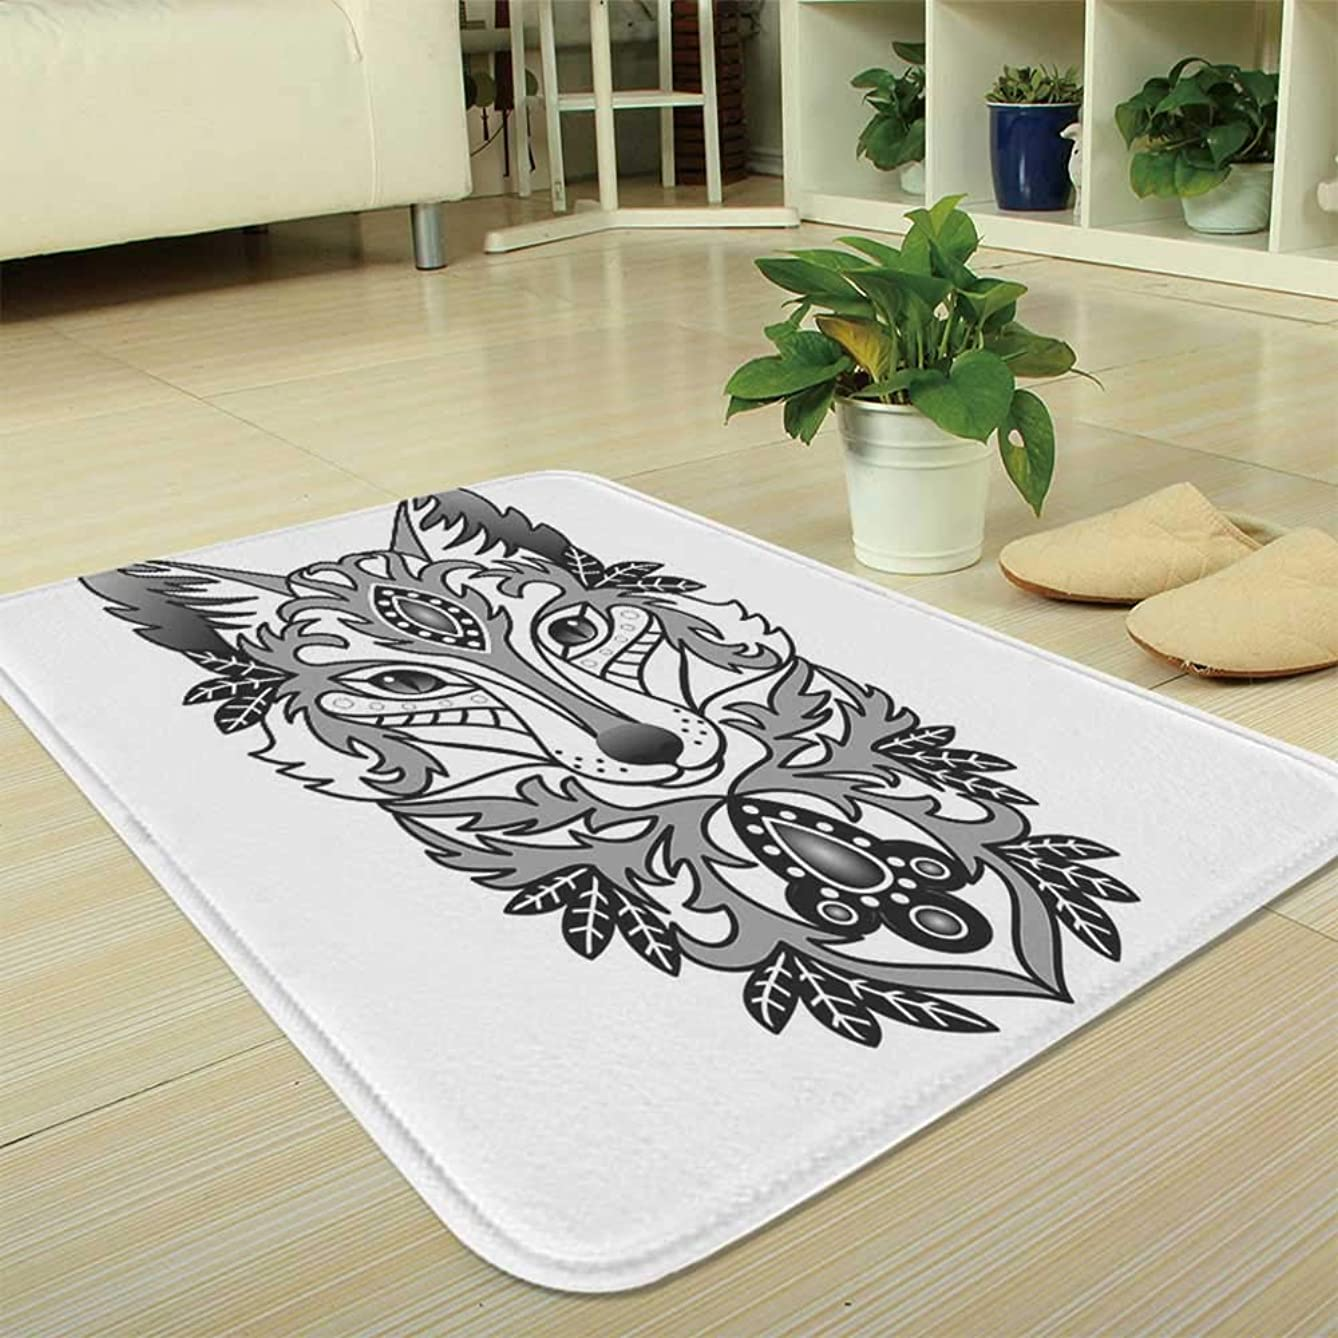 YOLIYANA Bath Mat,Fox,for Dining Room Bathroom Office,35.43